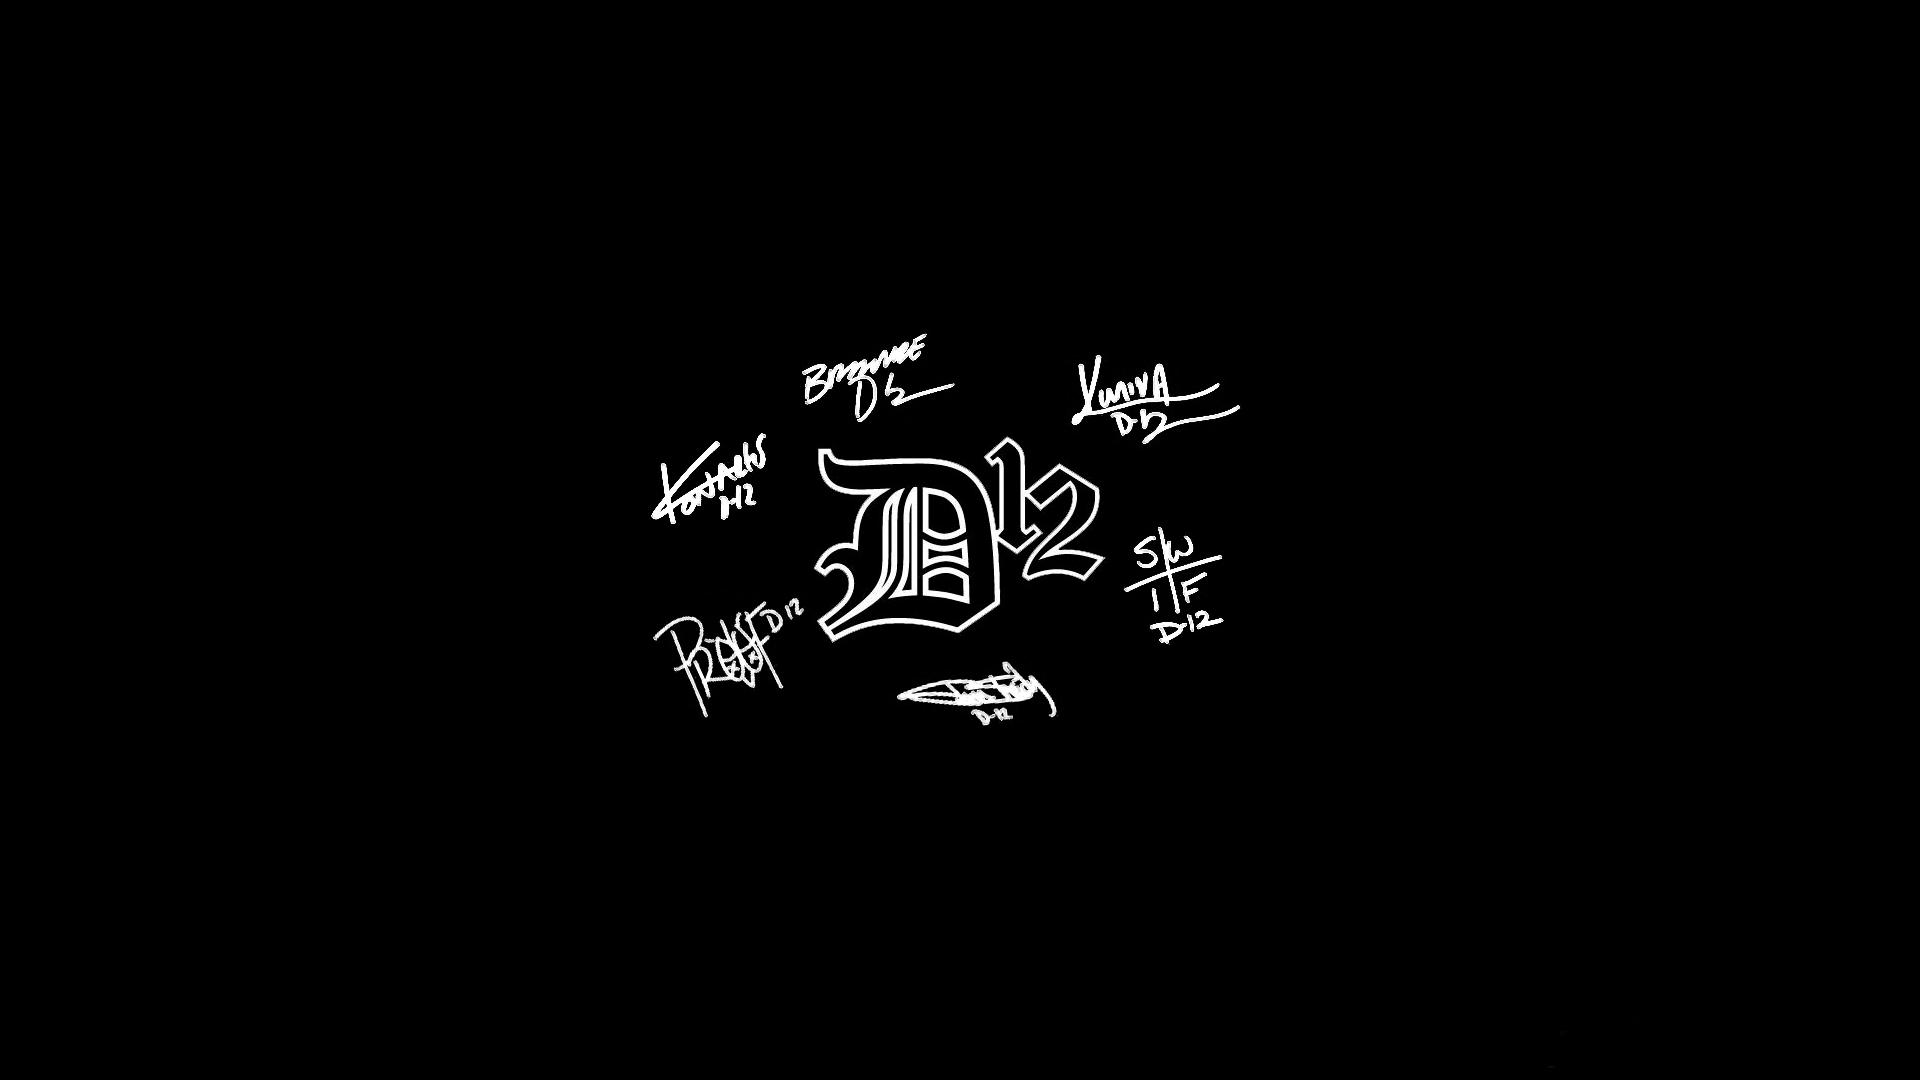 D12 Logo Wallpaper Images & Pictures - Becuo